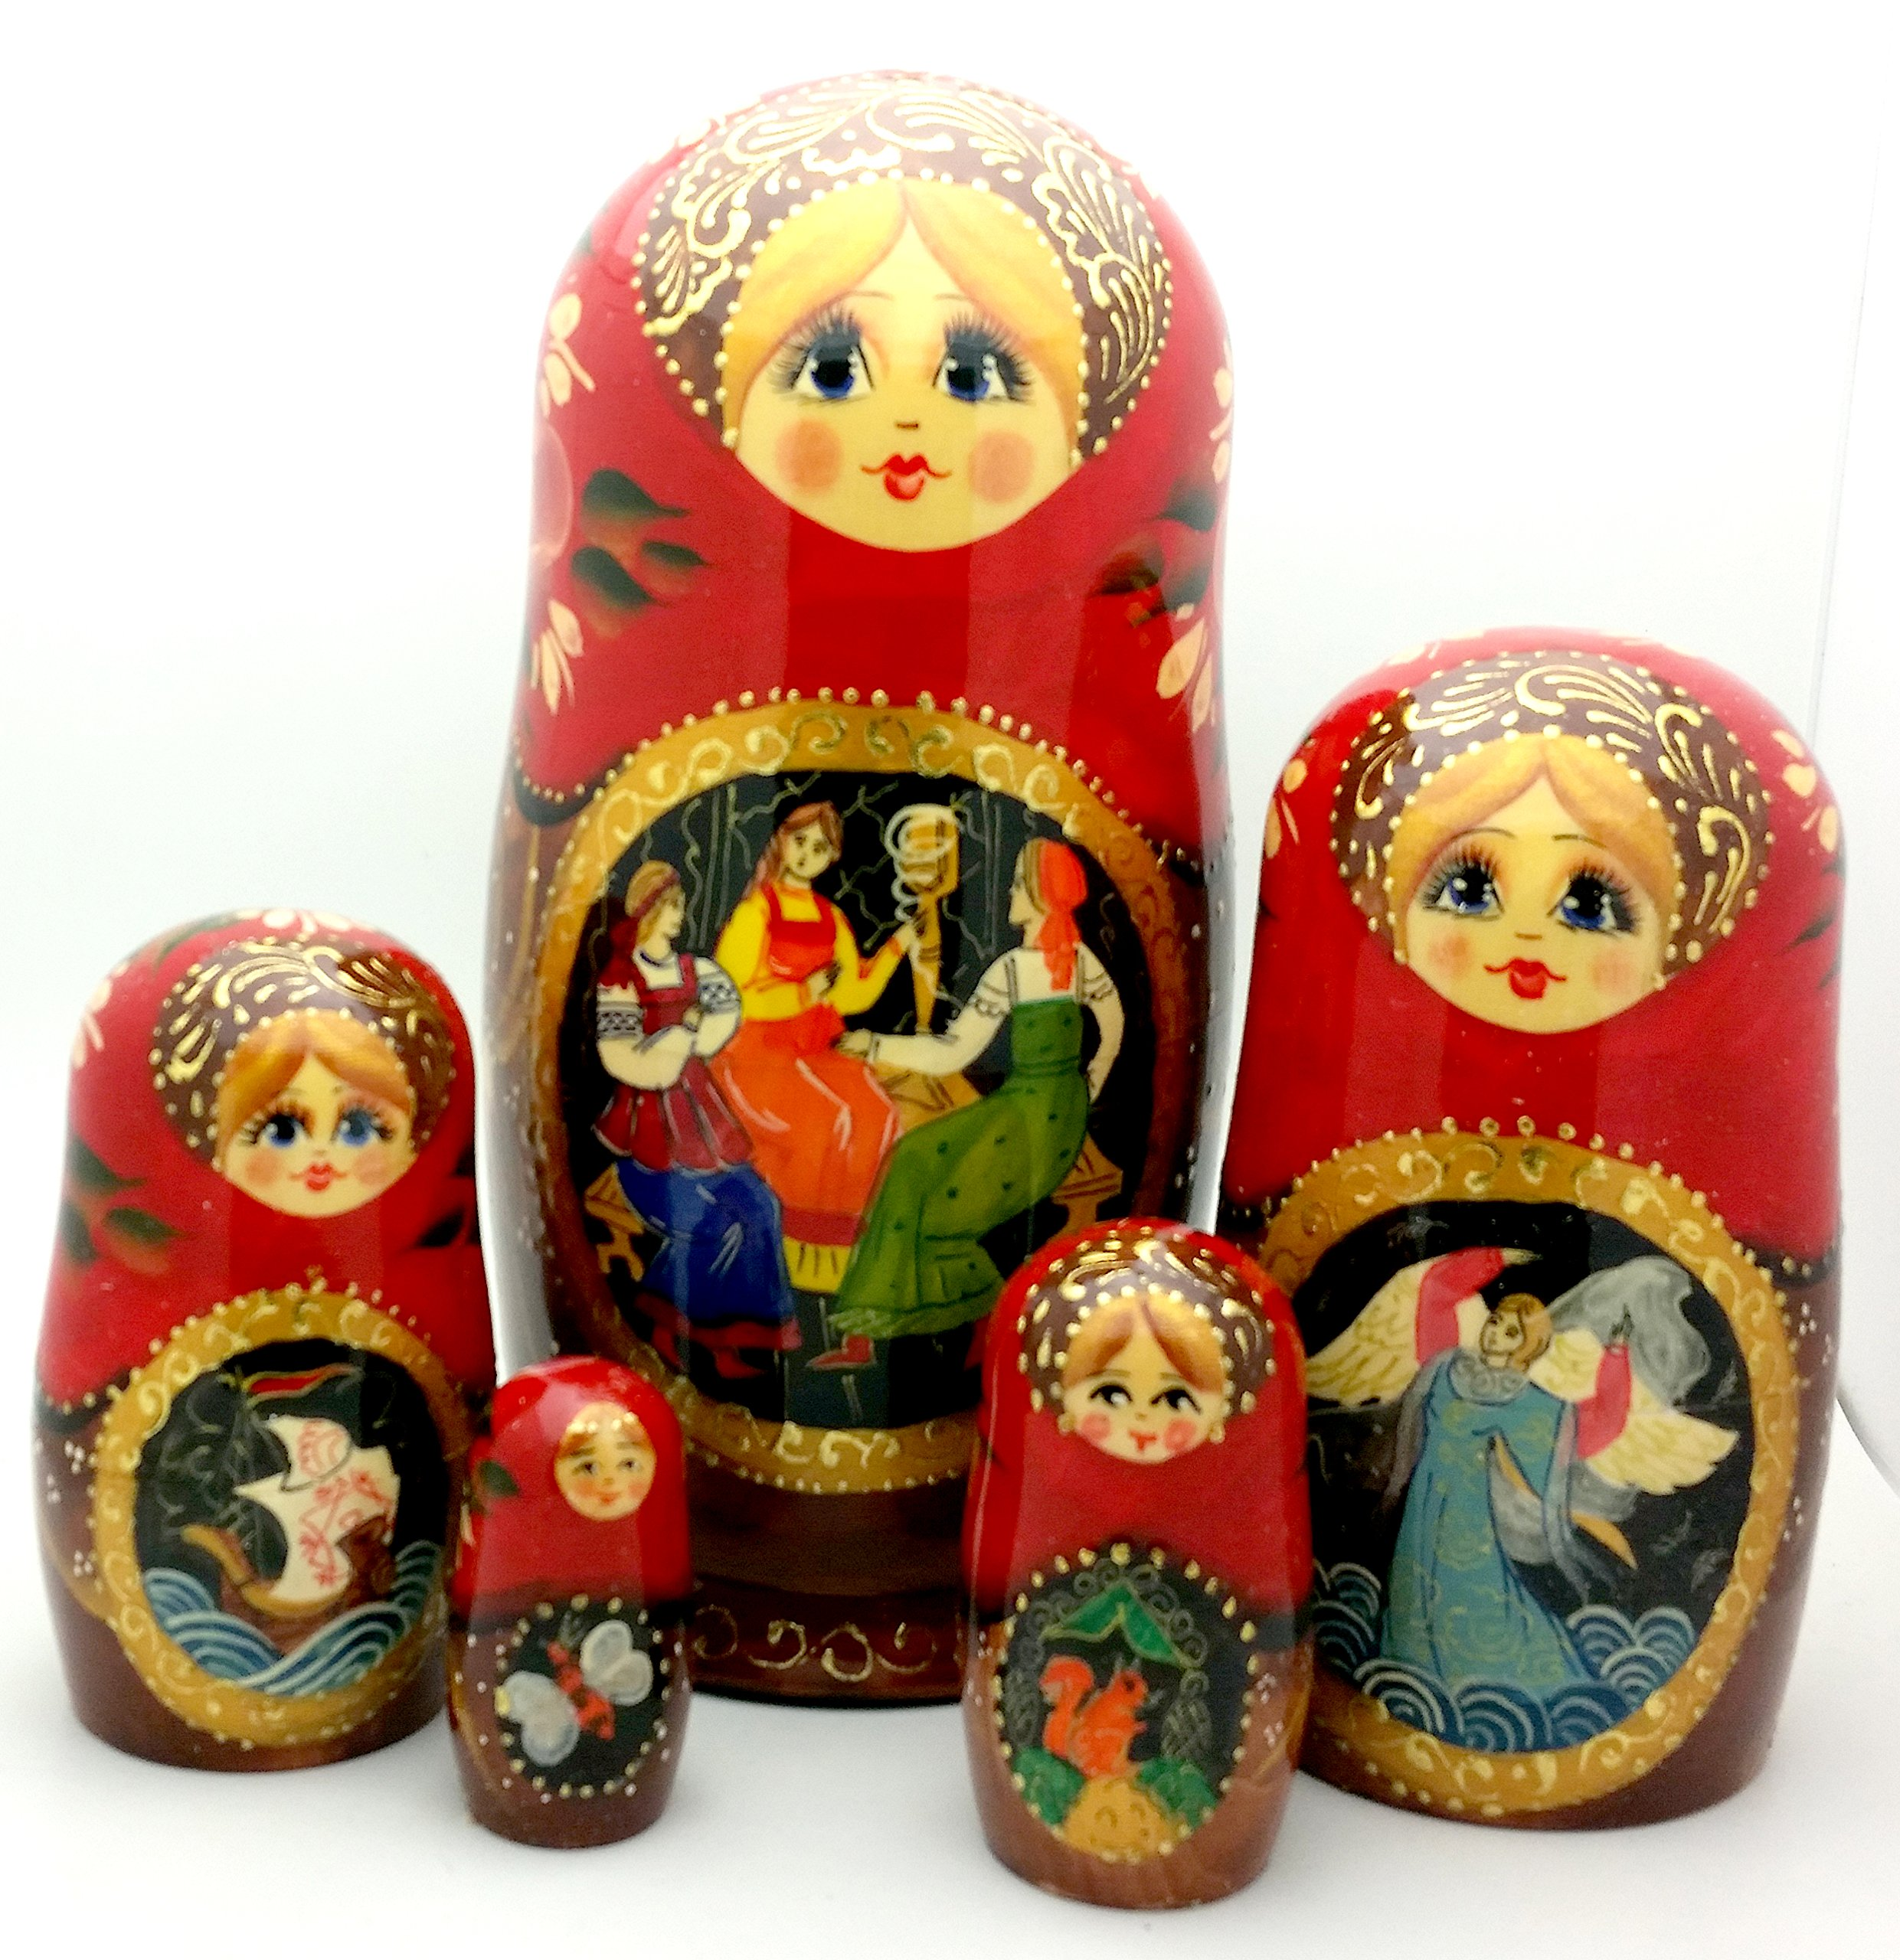 Tsar Saltan fairy tale by Pushkin Russian Nesting doll Hand Carved Hand Painted 5 piece Set 7'' tall by BuyRussianGifts